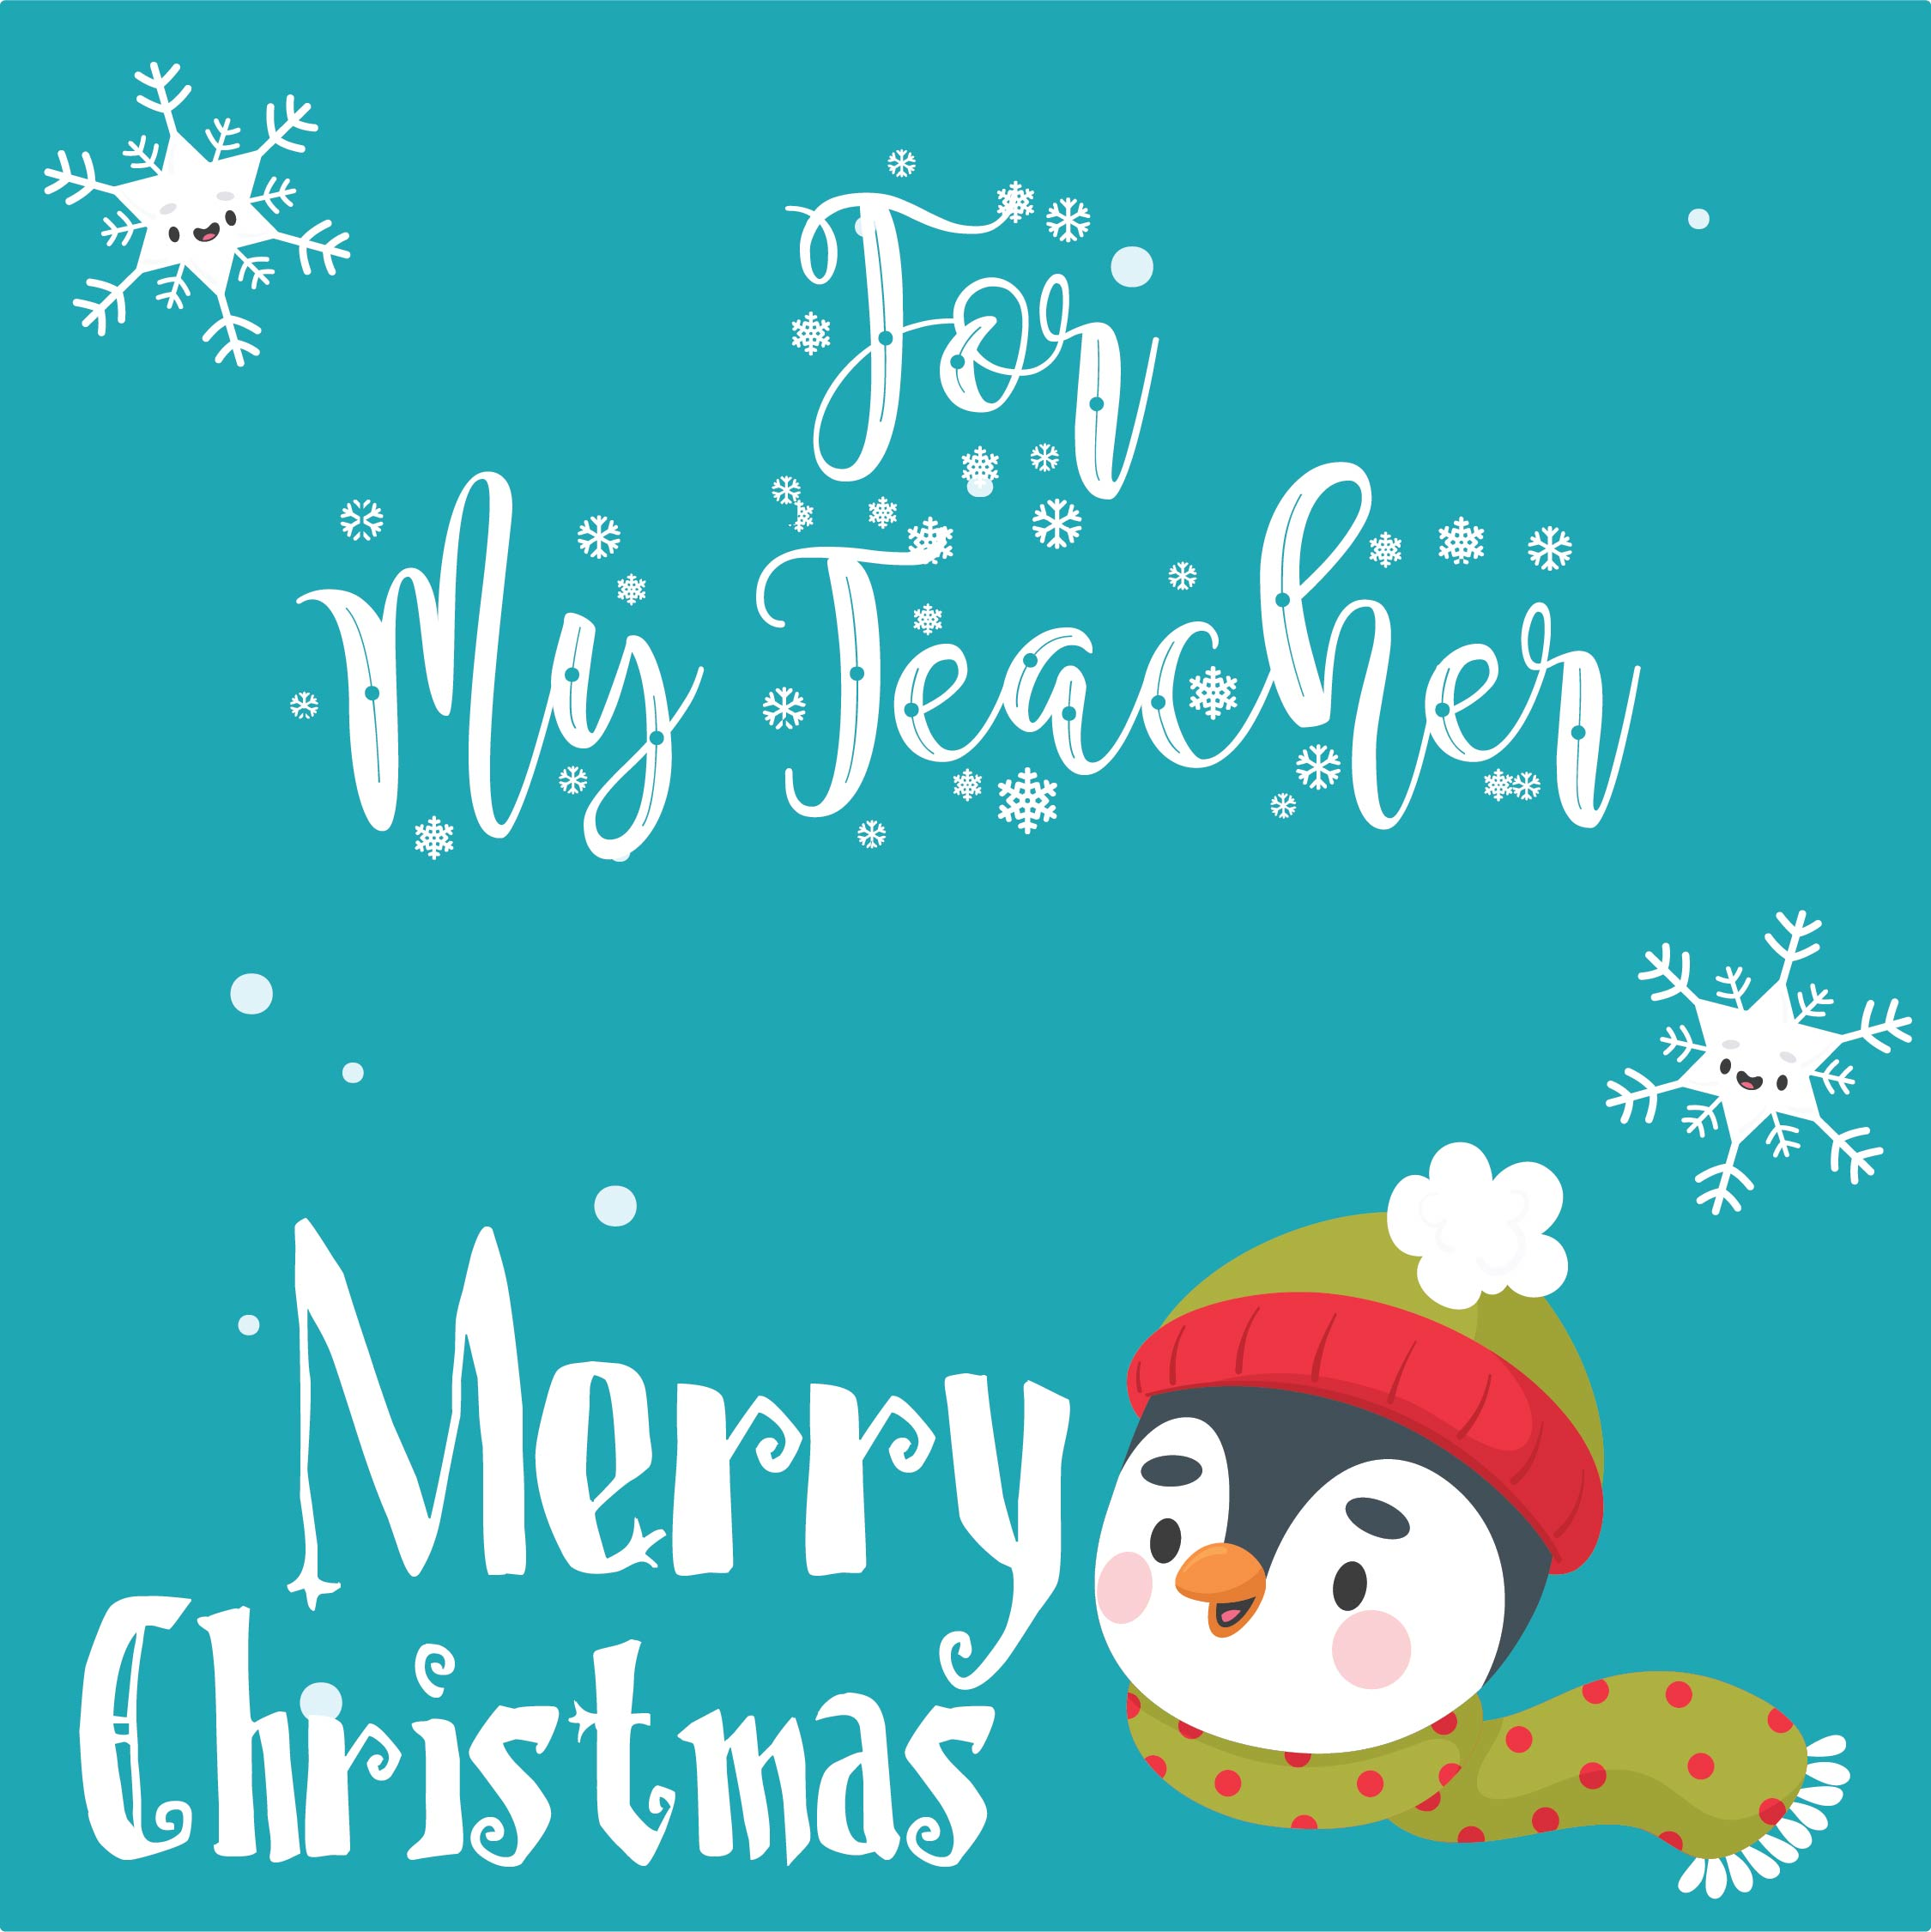 Printable Teacher Christmas Cards